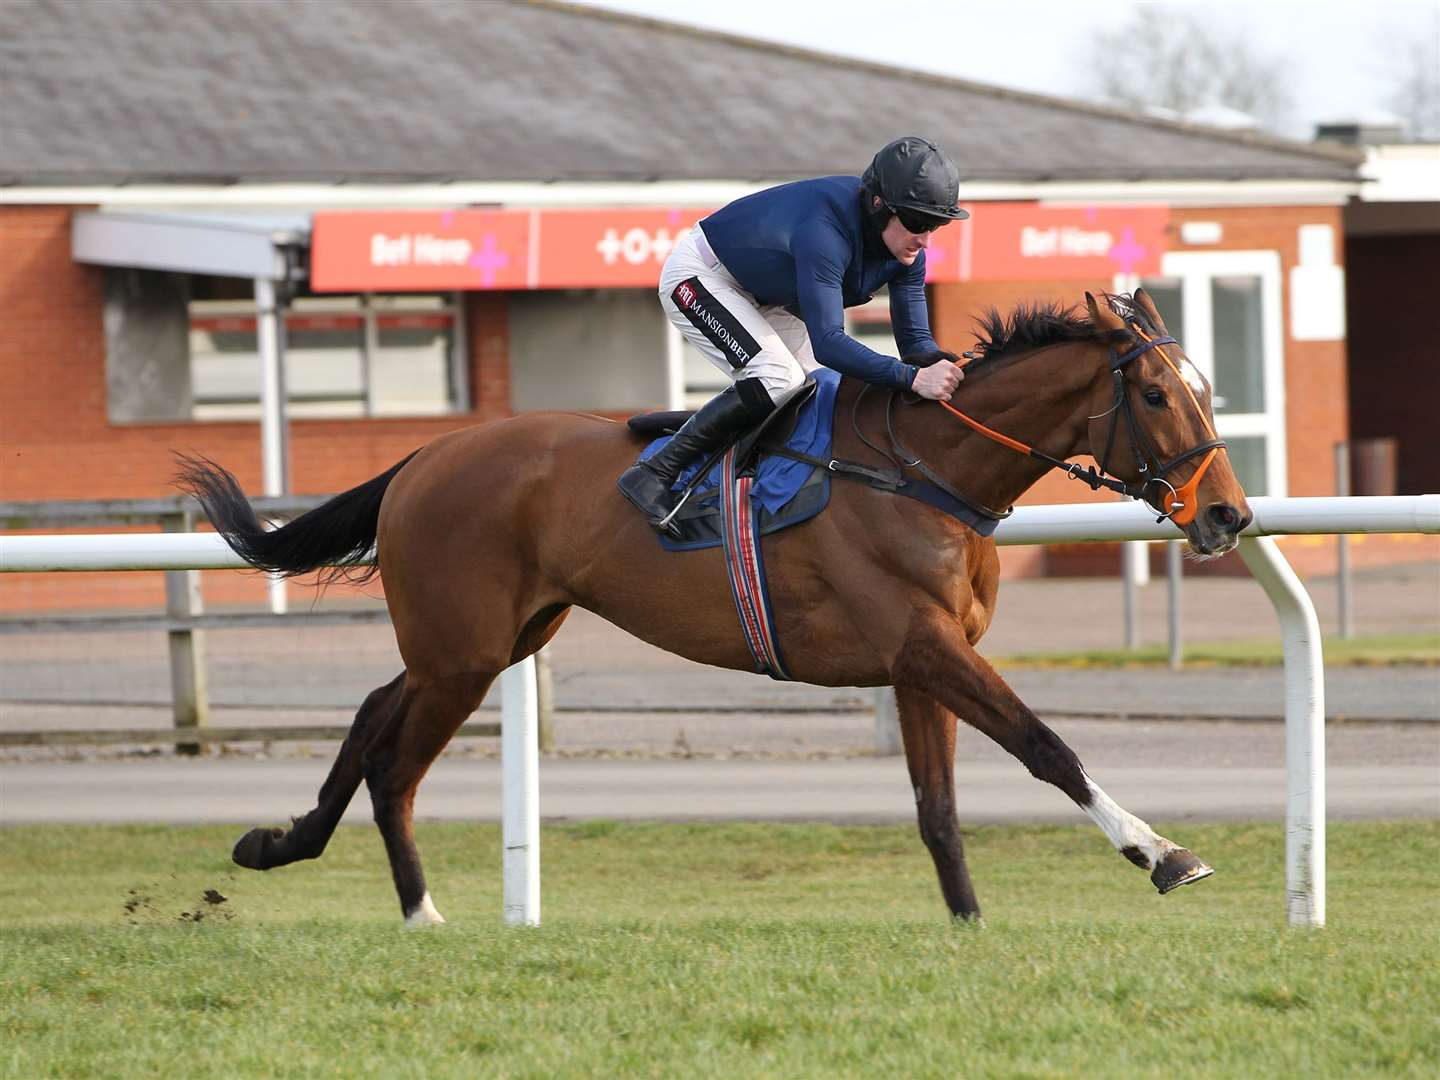 Parramount and Brian Hughes win at Stratford. Photo: Steve Davies / www.sdphotos.co.uk